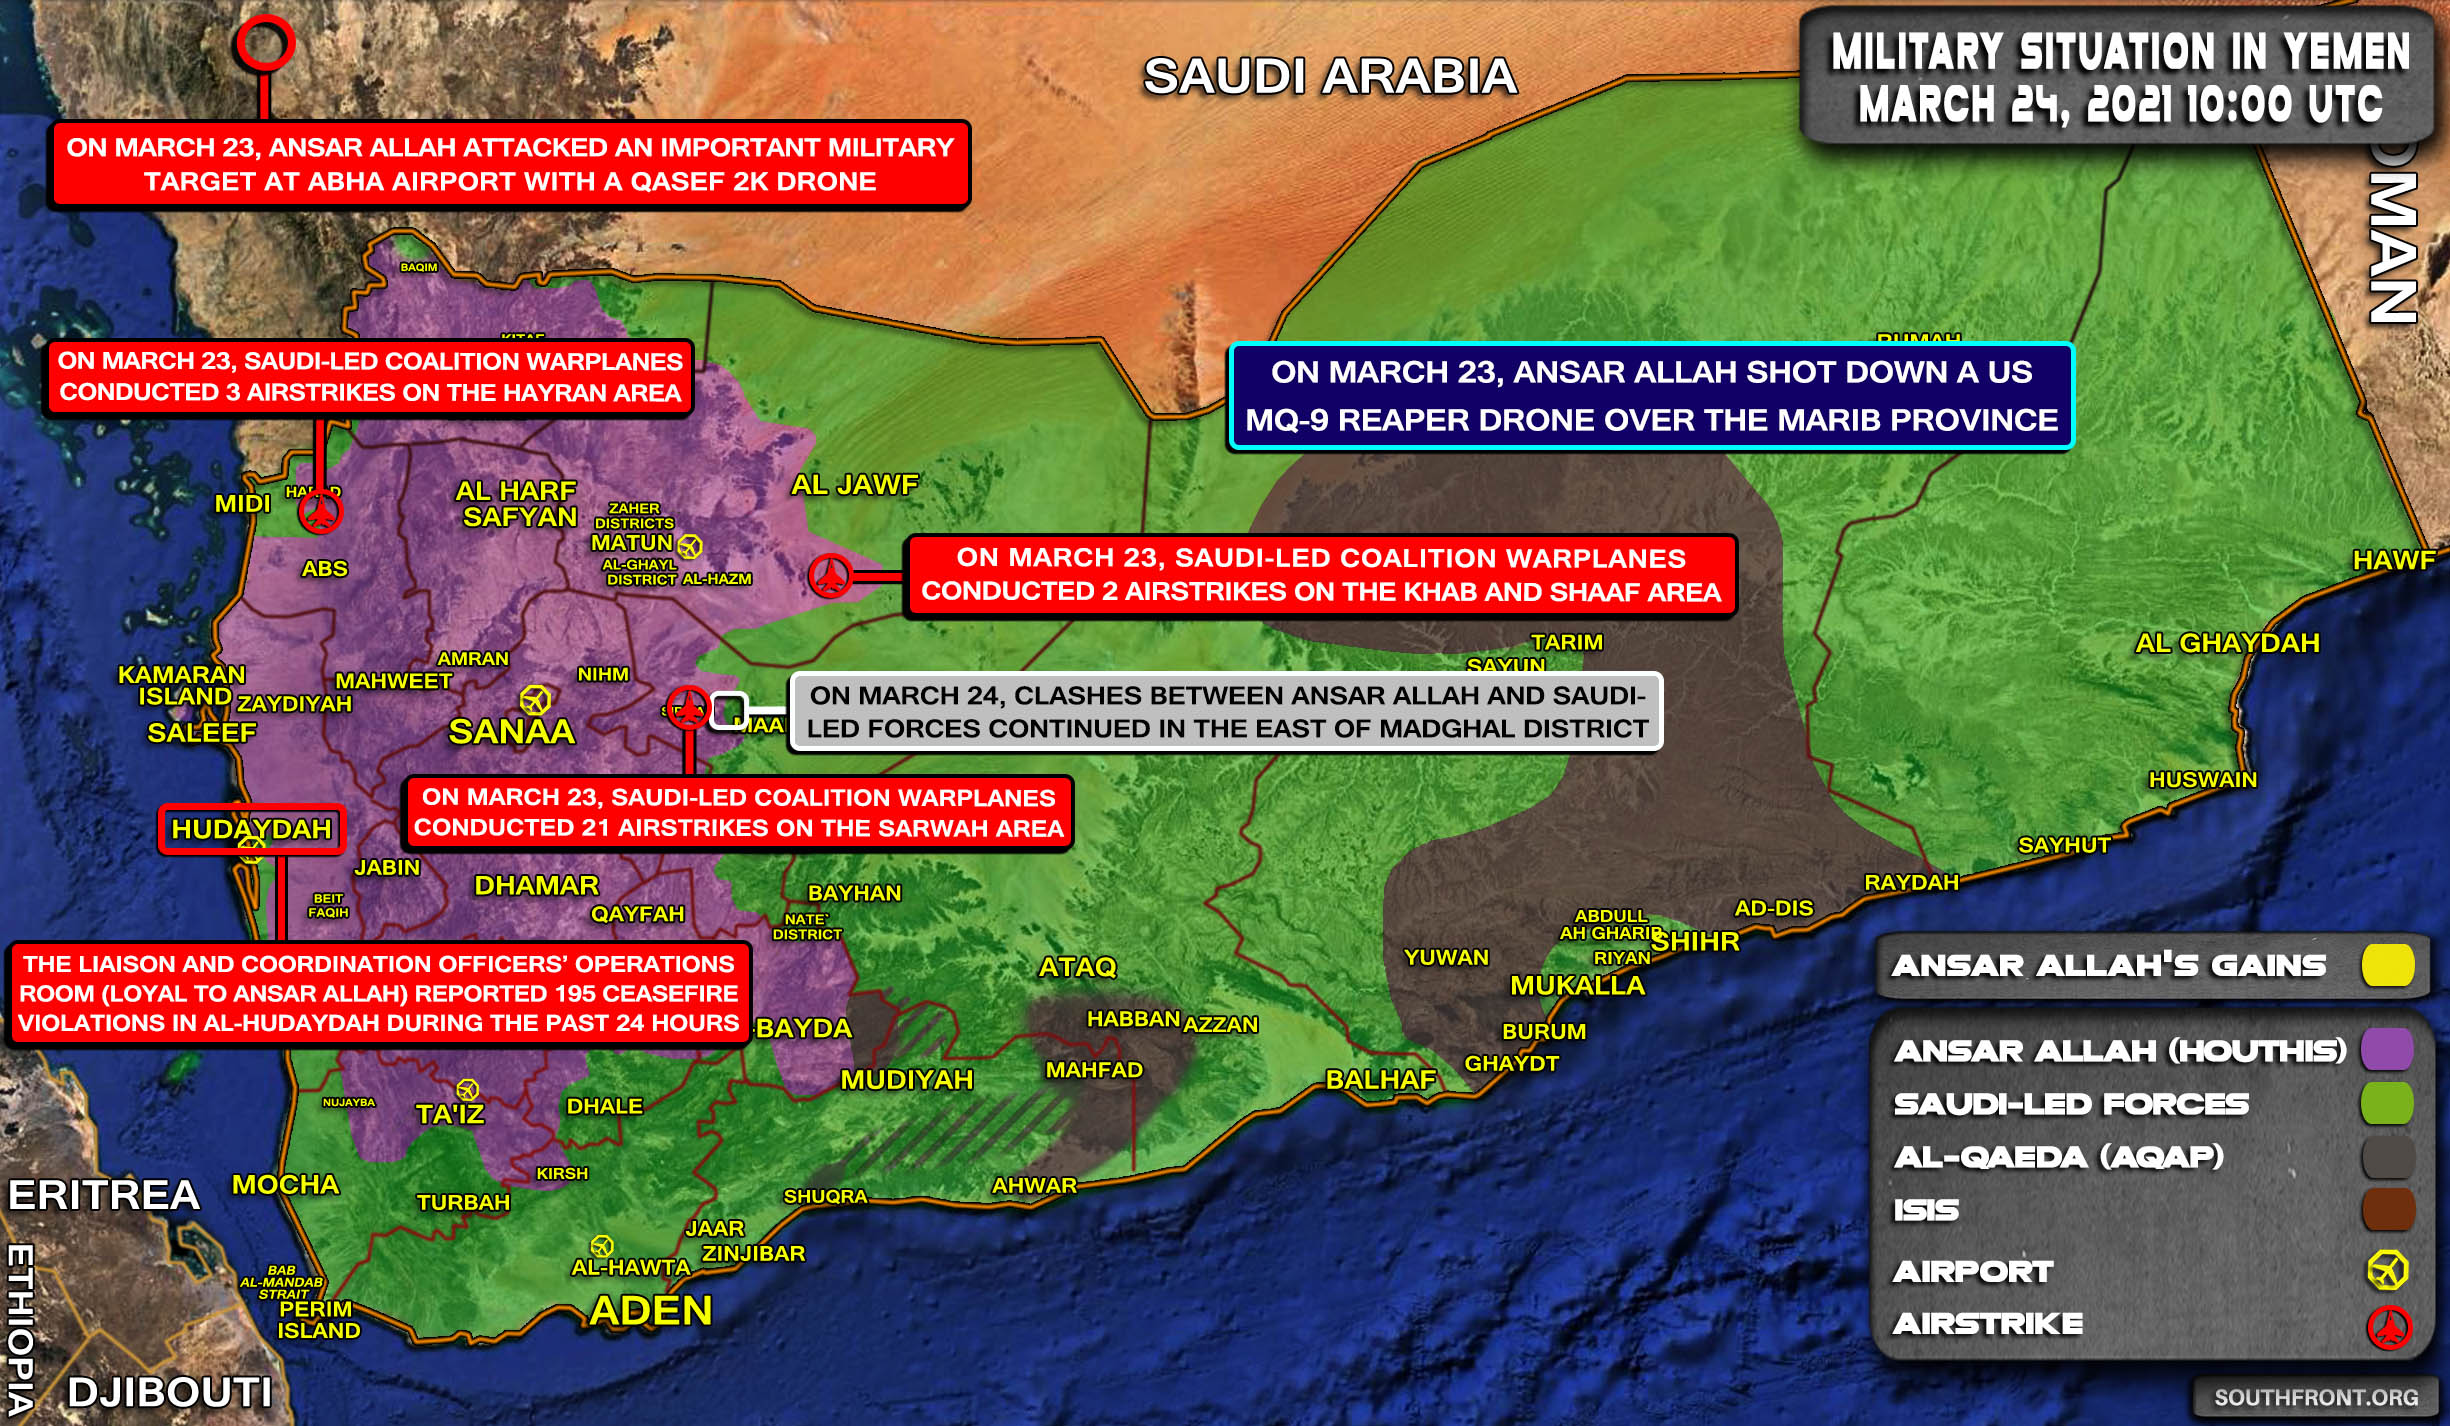 Military Situation In Yemen On March 24, 2021 (Map Update)